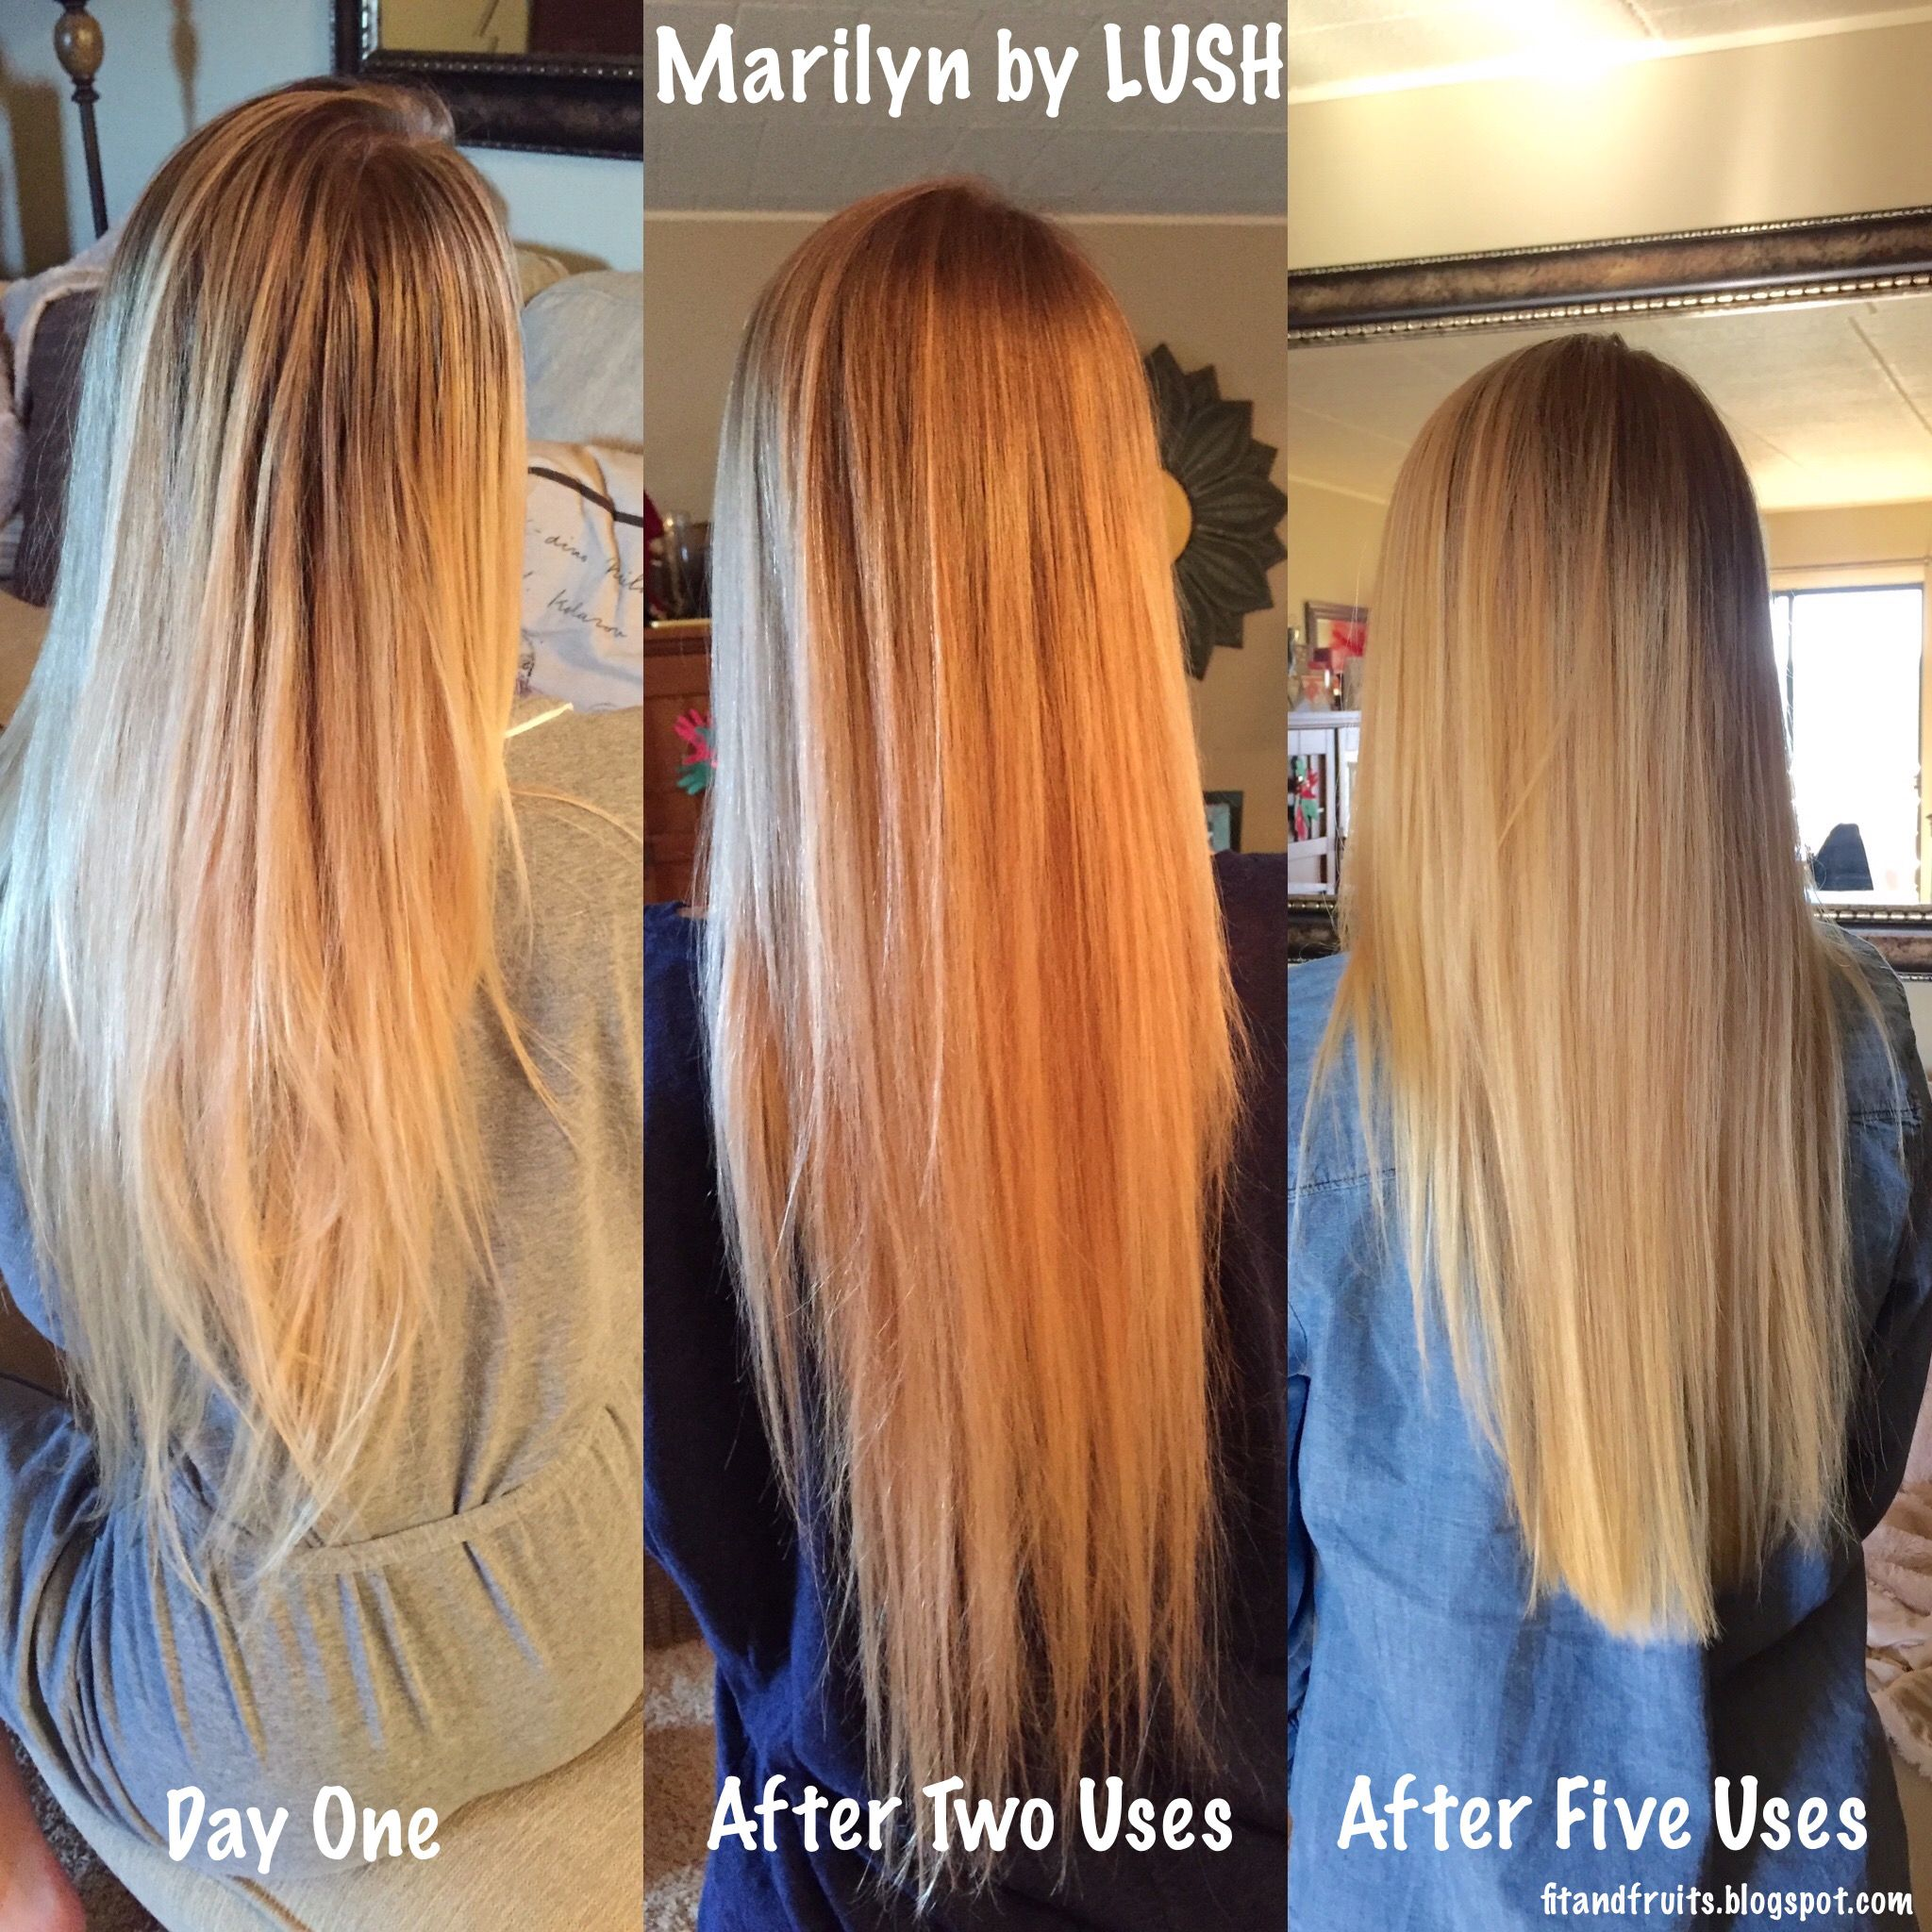 Pros And Cons To Consider Before Dyeing Your Hair Naturally With Henna Some Average Jo In 2020 How To Lighten Hair Your Hair Natural Hair Styles